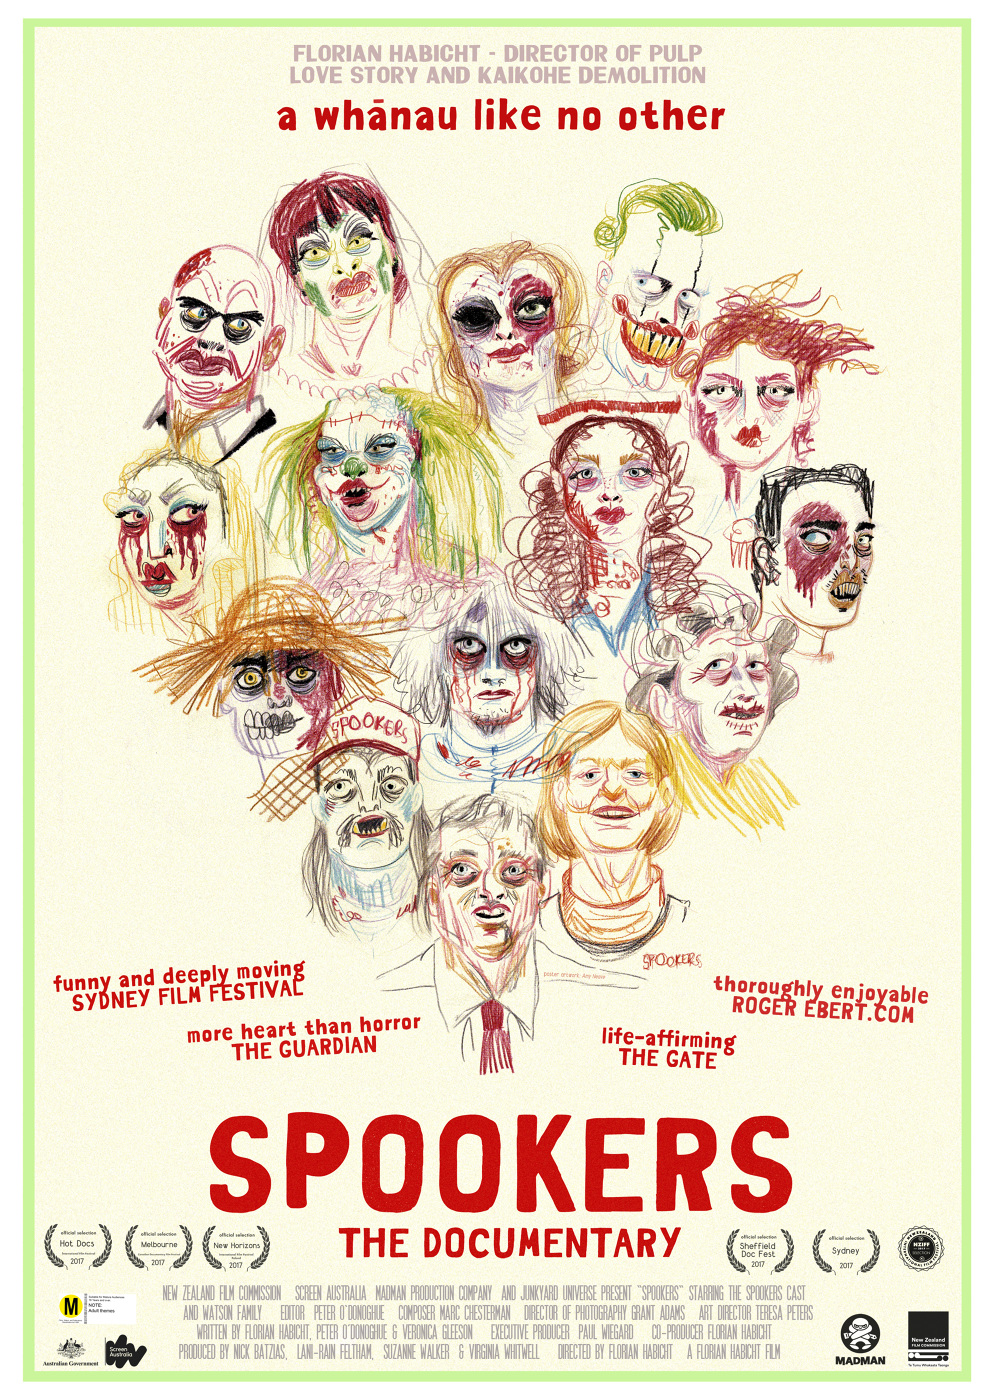 Spookers (2017) - The films of Florian Habicht